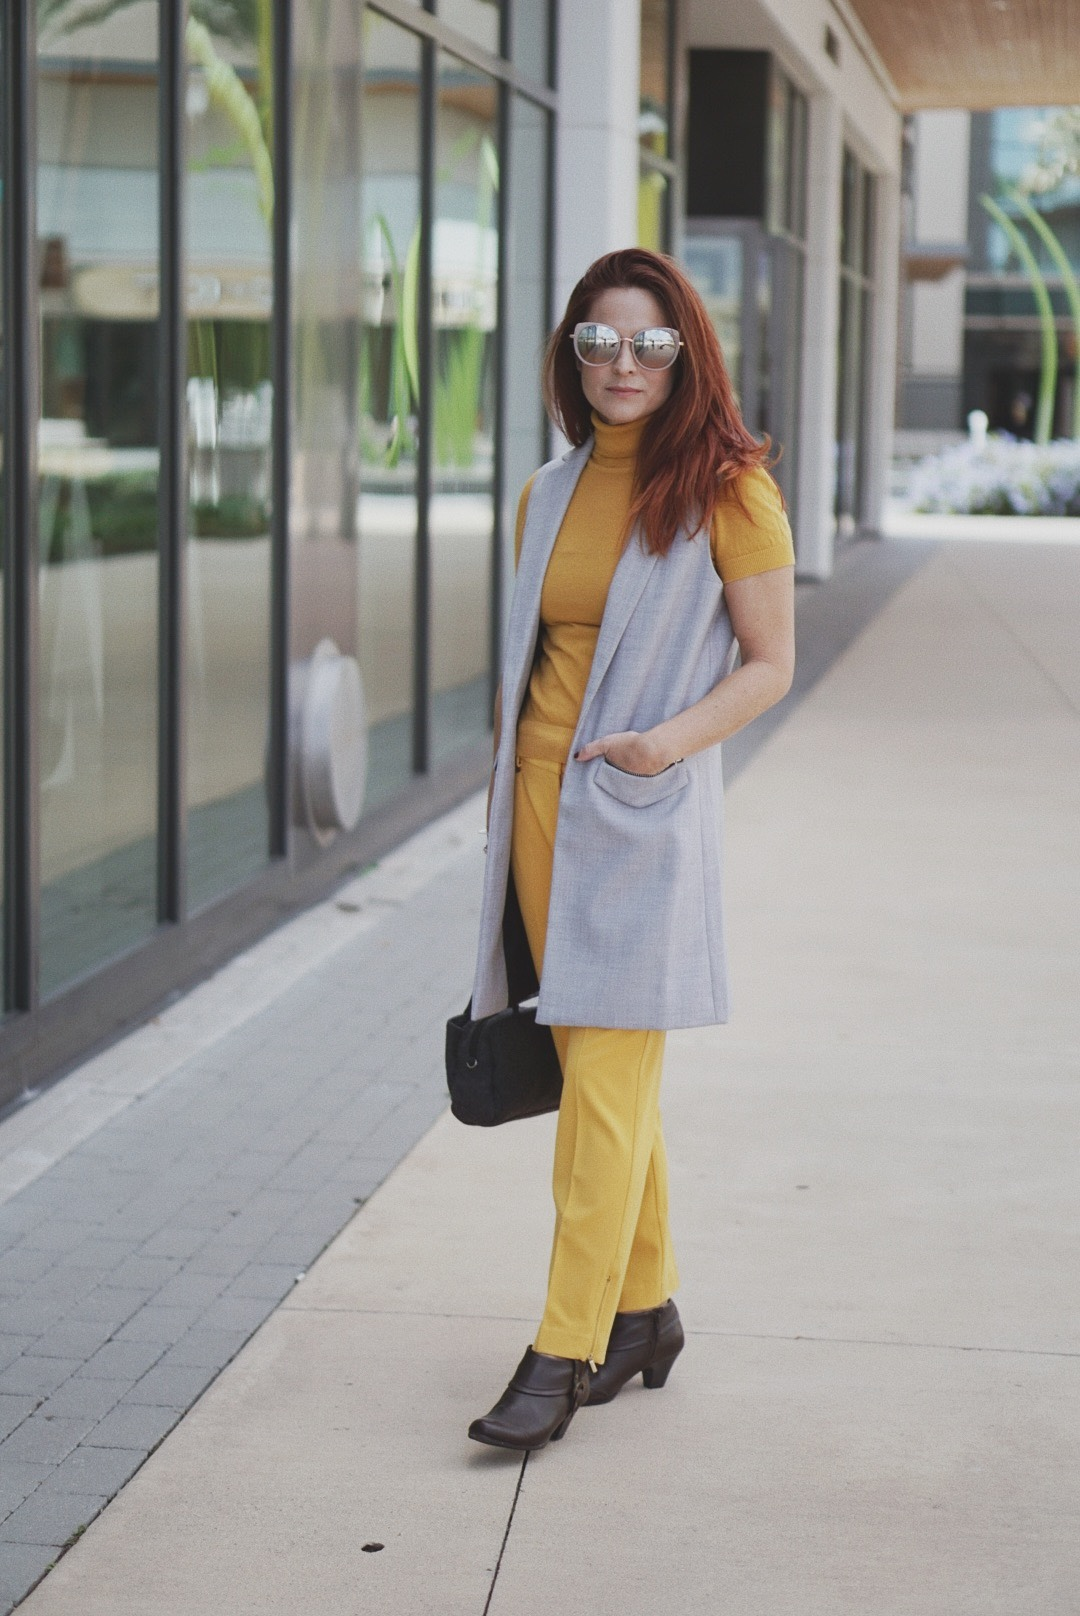 mustard yellow outfits, vest outerwear, booties,